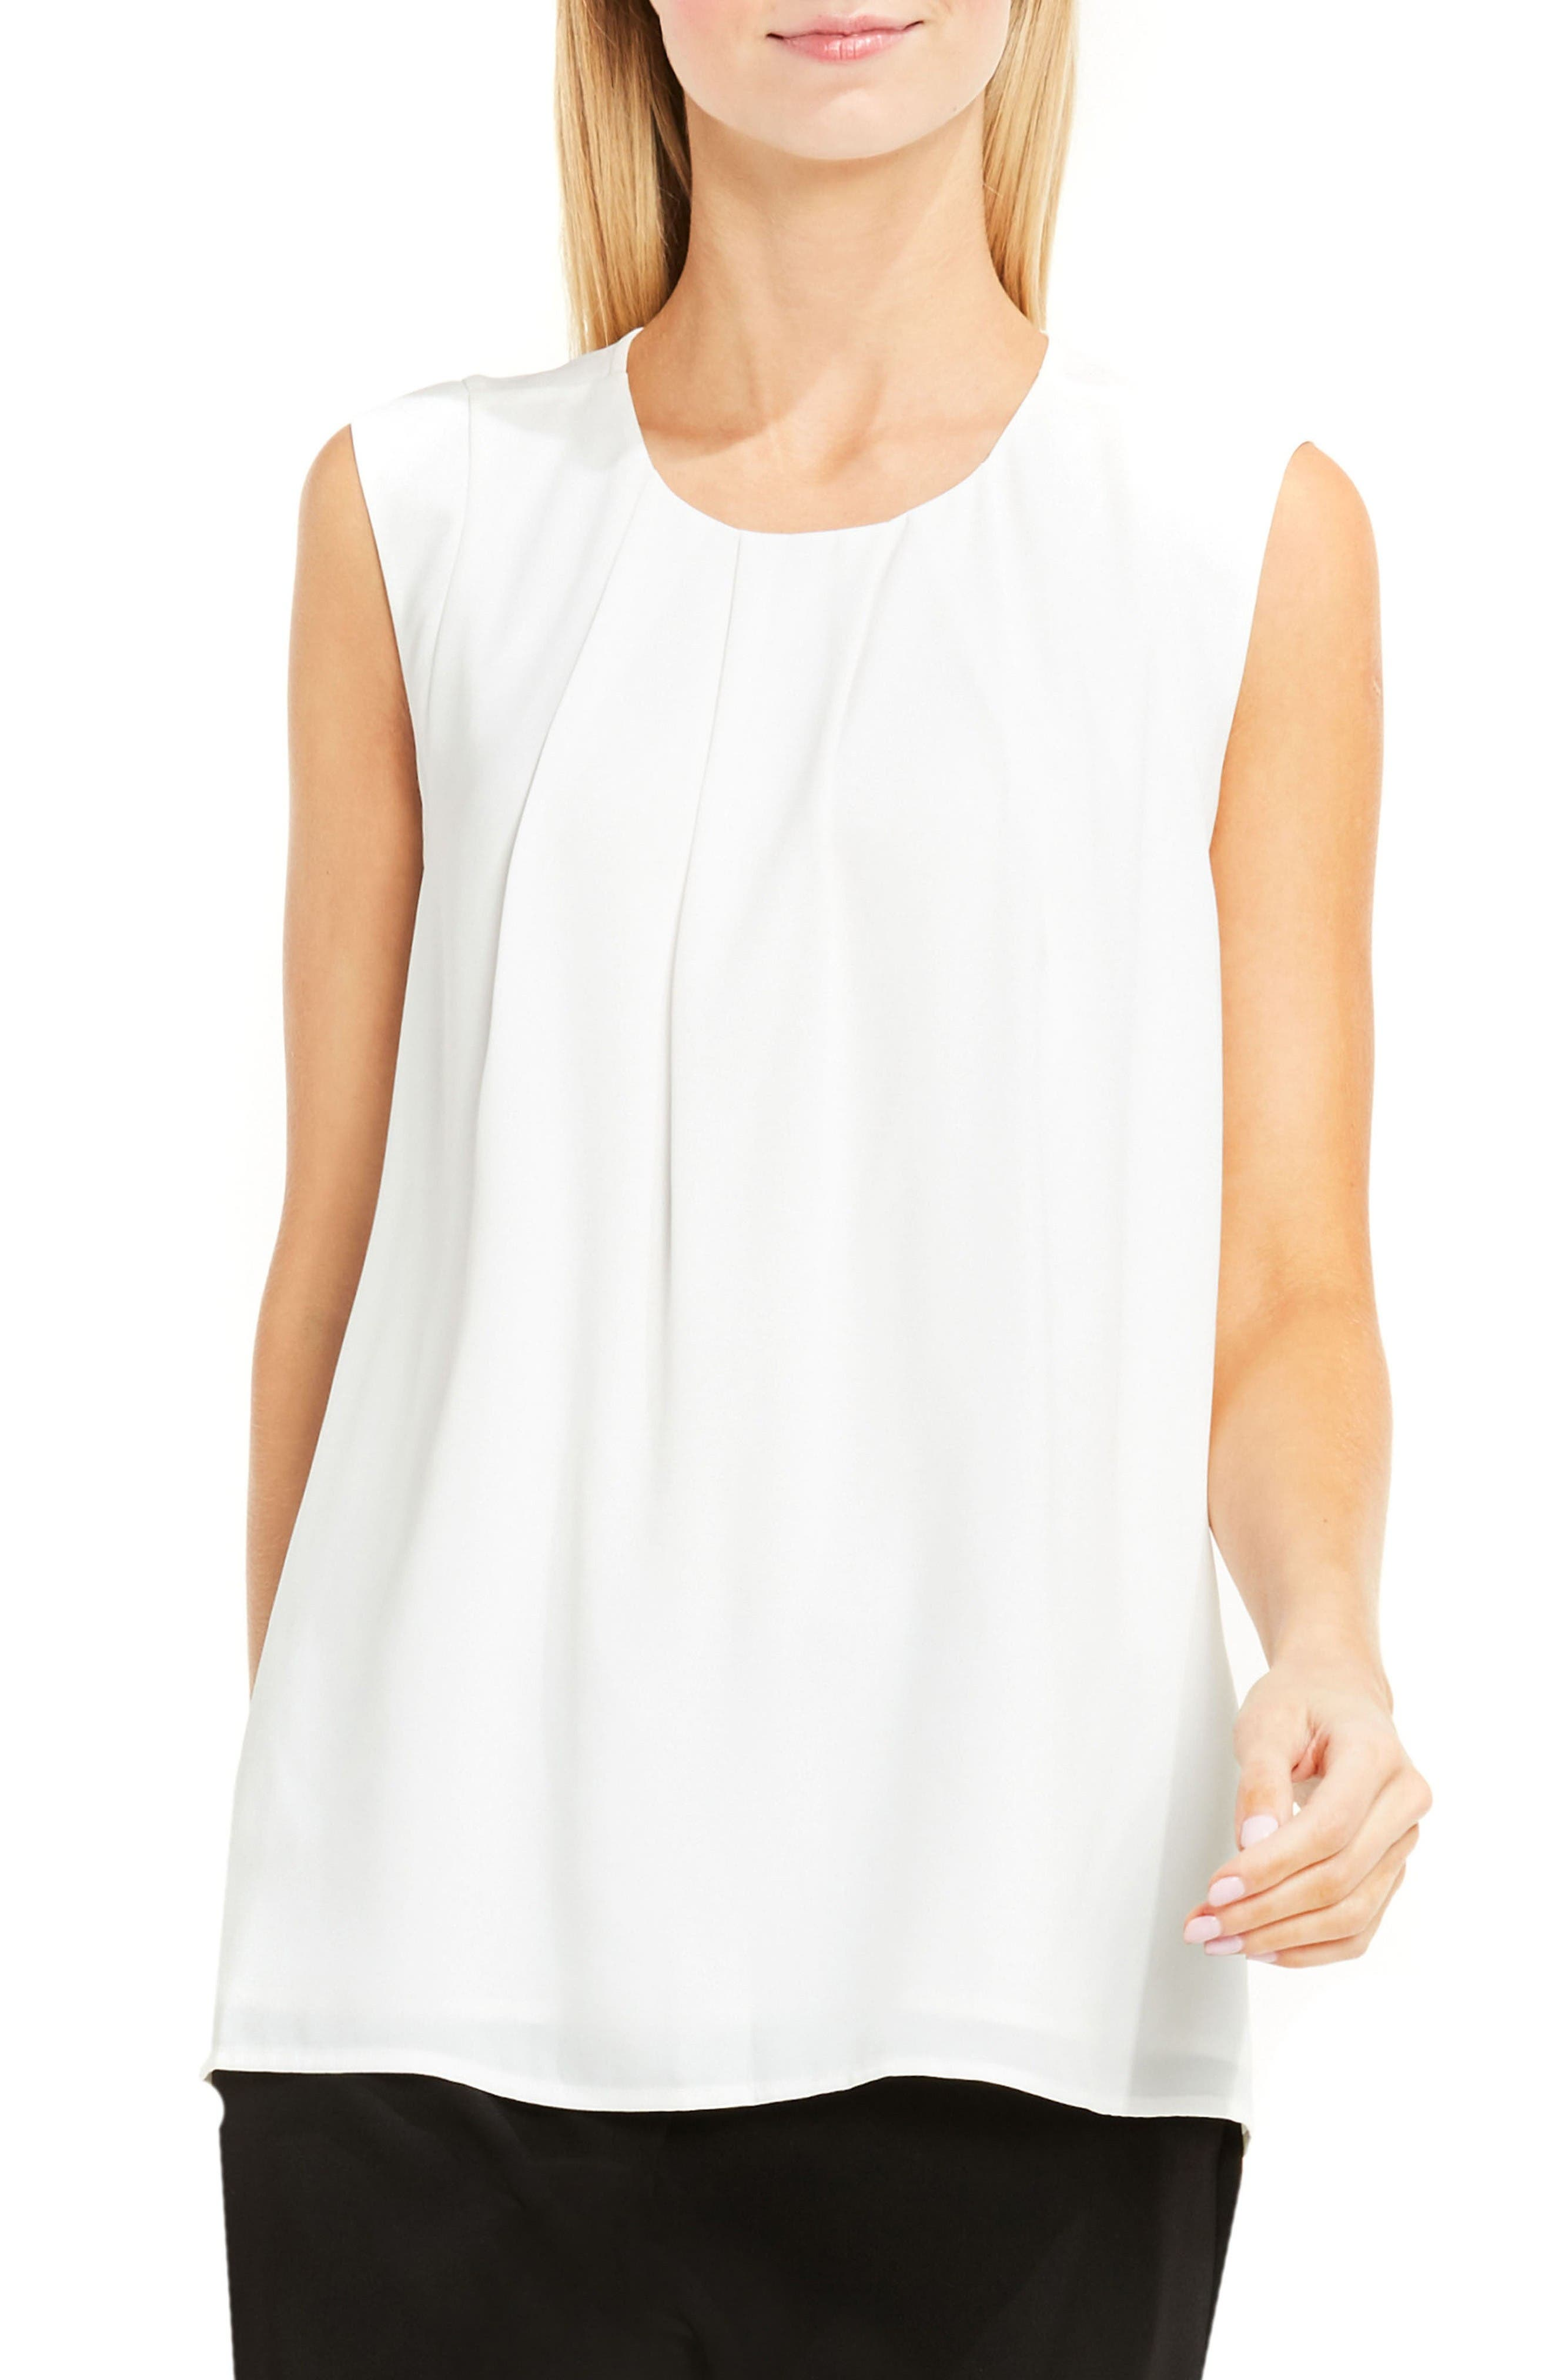 Main Image - Vince Camuto Pleat Neck Blouse (Regular & Petite)